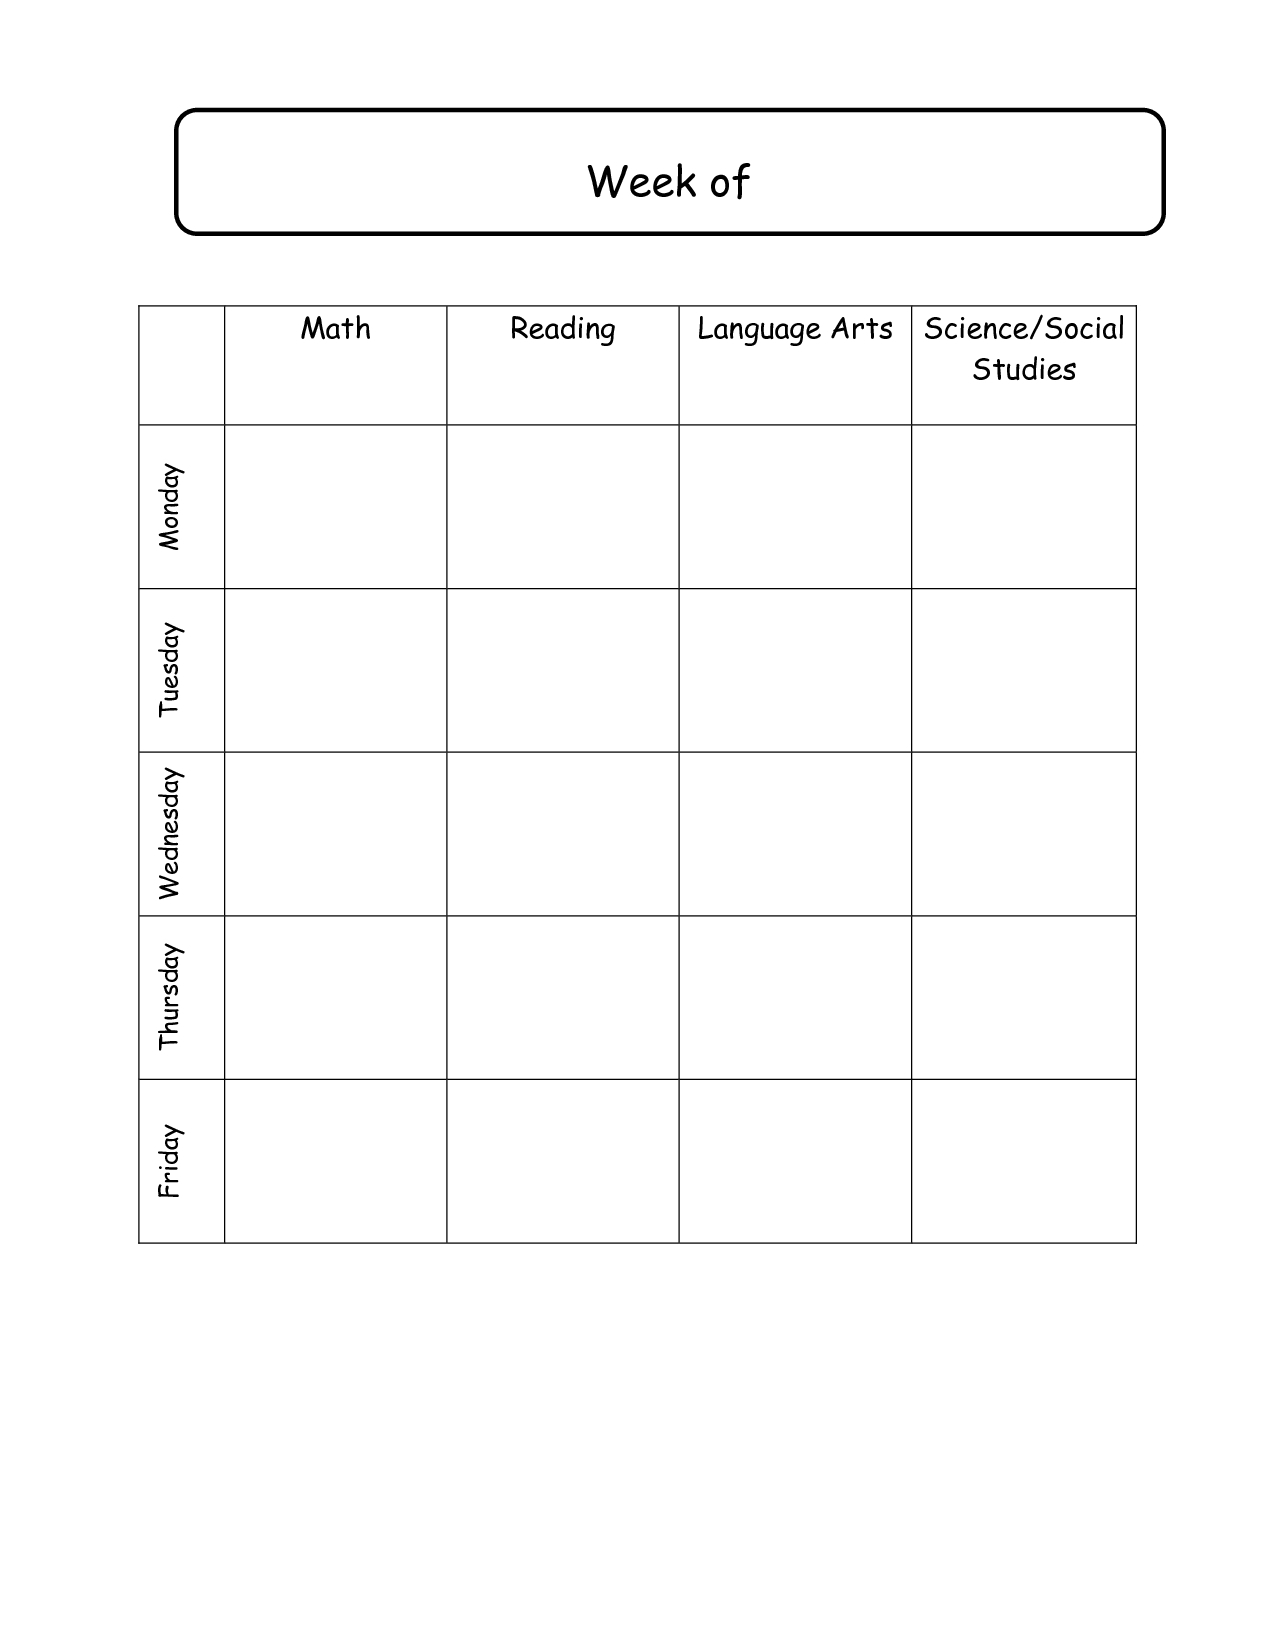 Editable Daily Schedule Template Large Blank Spider Plan Holidays pertaining to Large Blank Editable Spider Plan Template